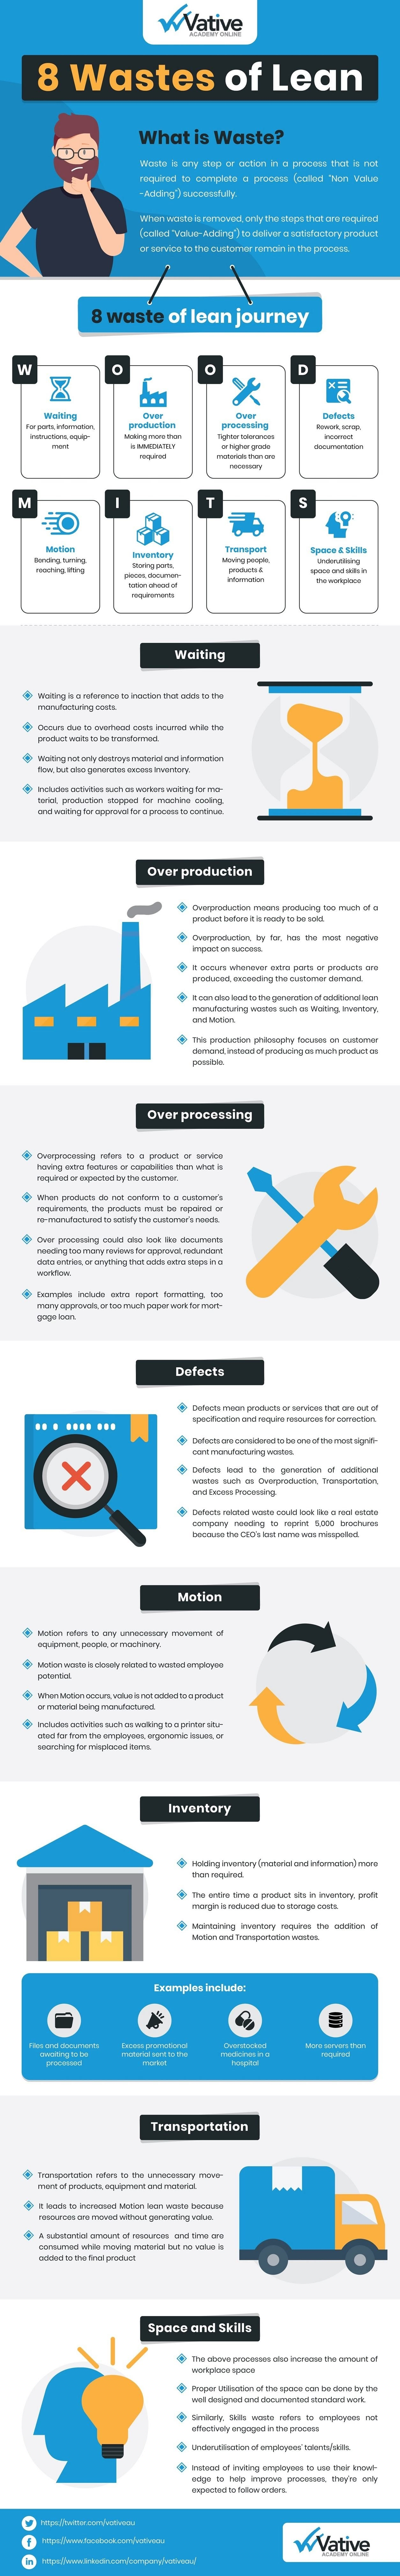 8 Wastes Of Lean #infographic